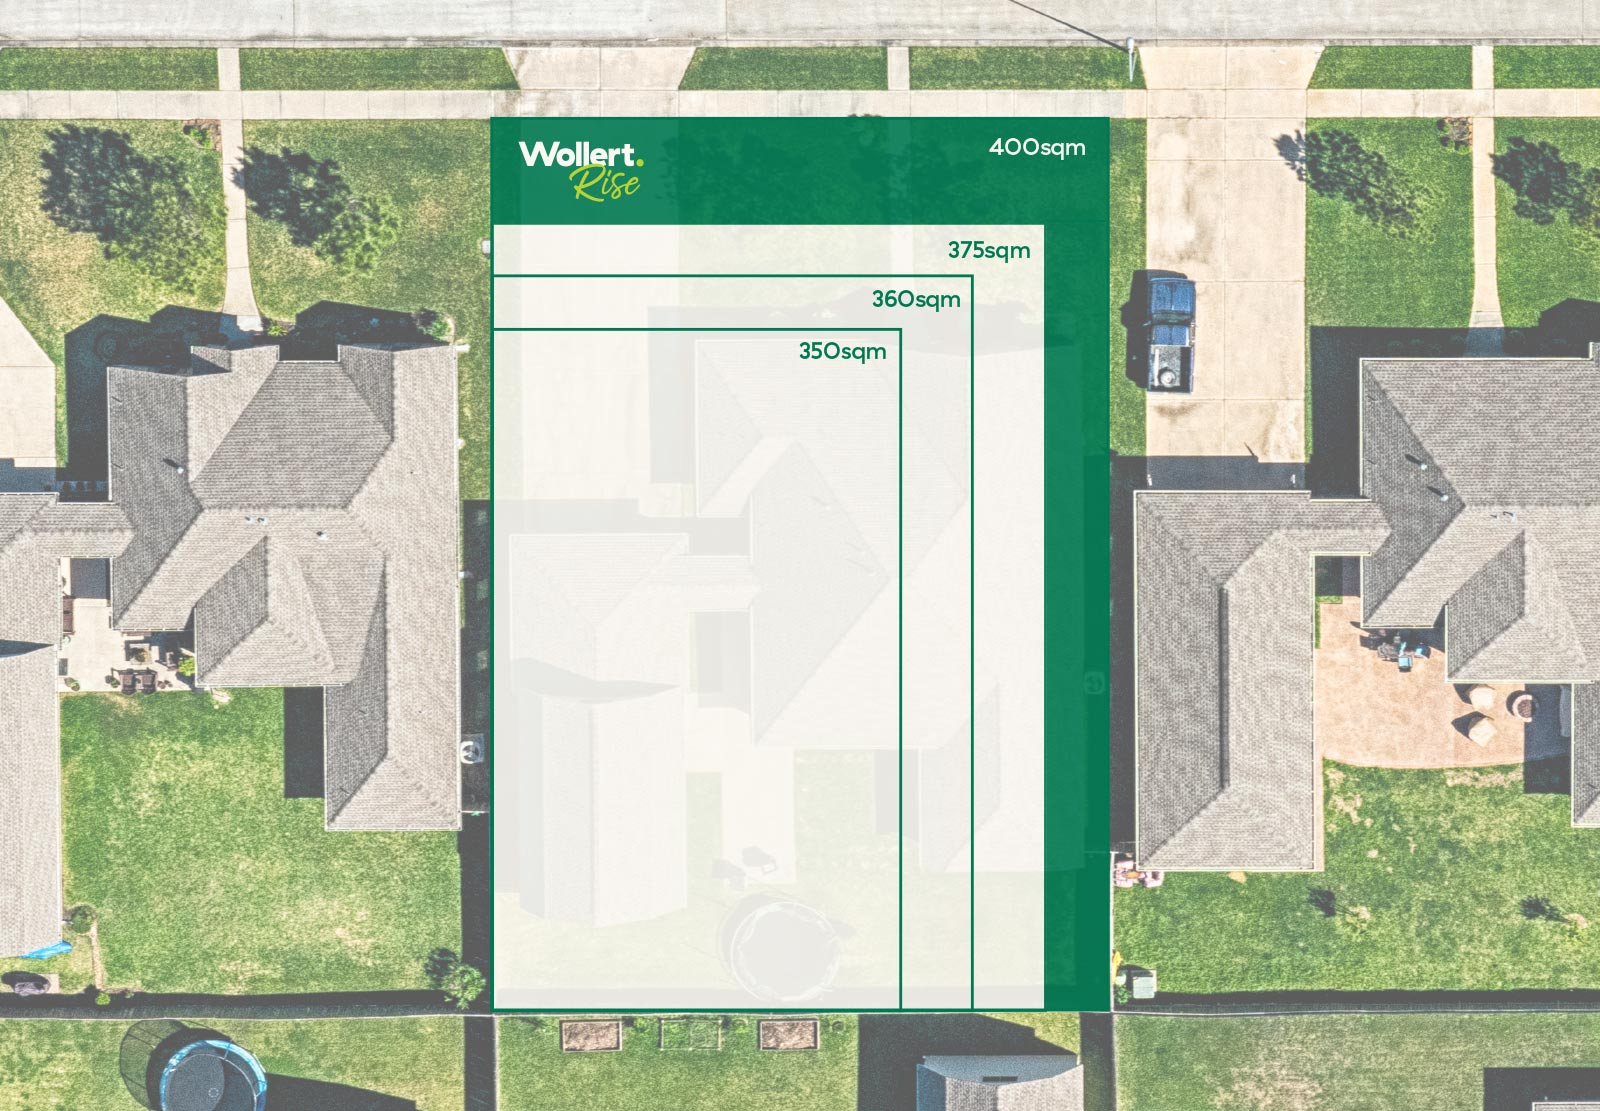 Afford more with a Larger Lot at Wollert Rise